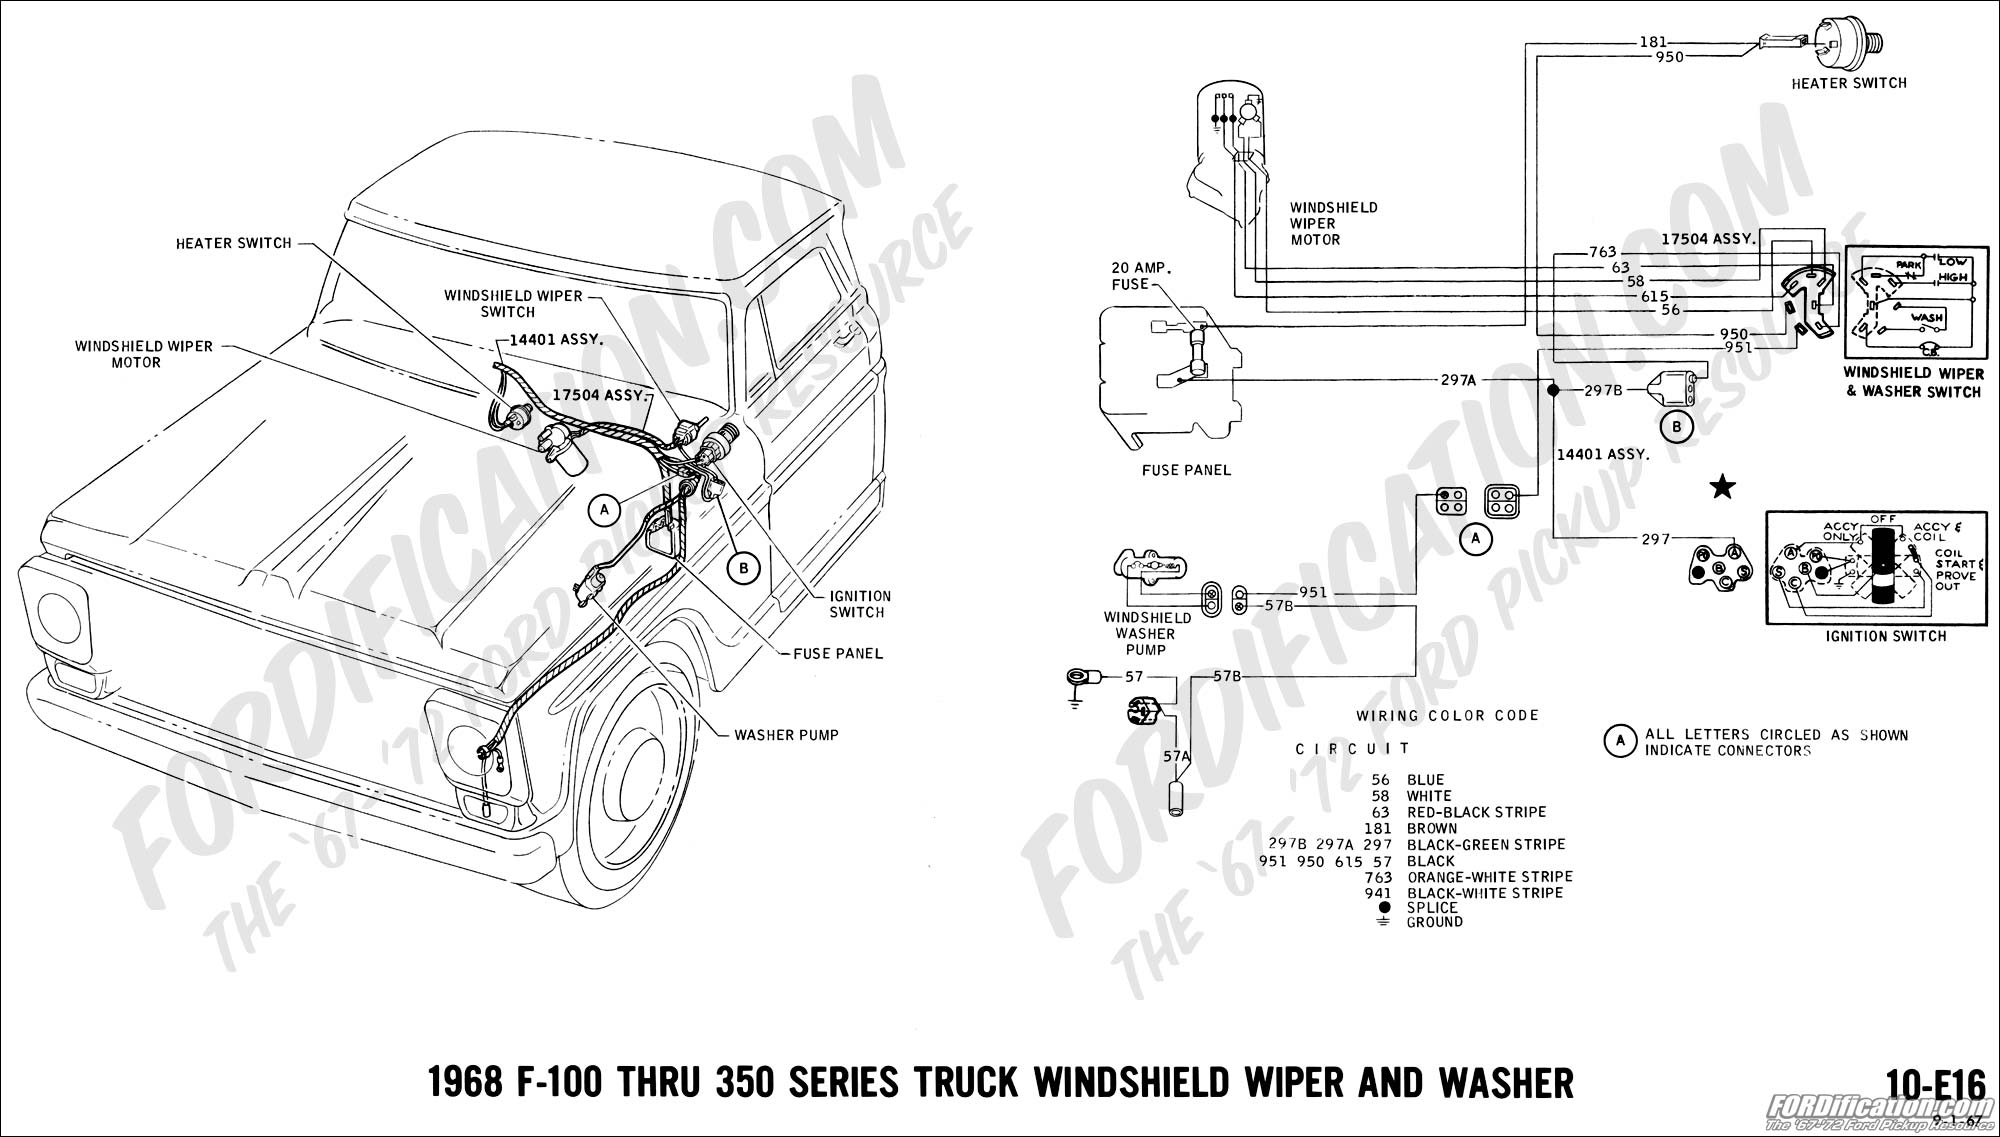 1997 F150 Wiring Harness Kits Free Download Library Ford Truck Technical Drawings And Schematics